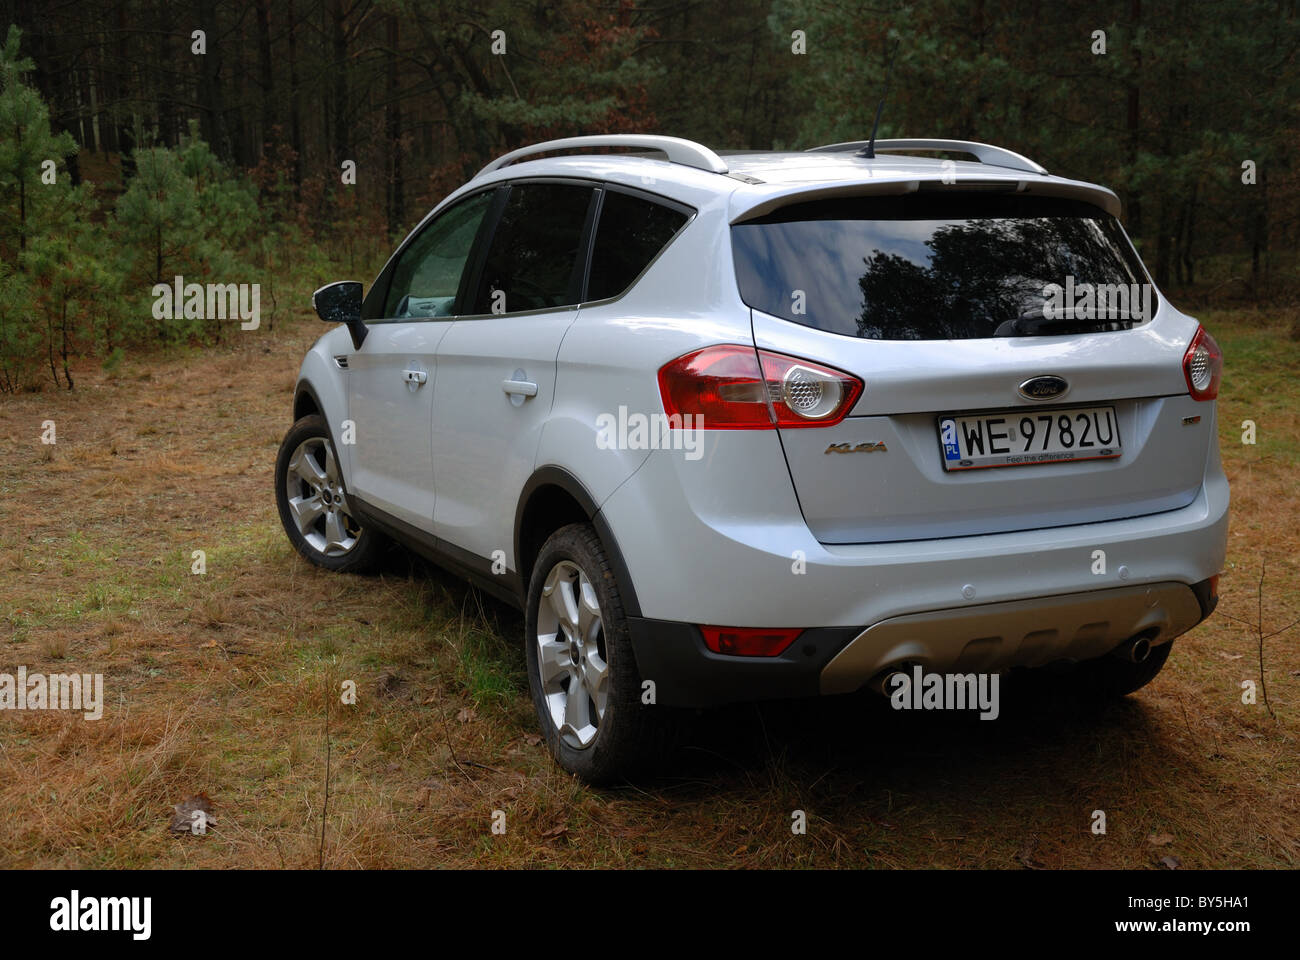 Ford kuga 2 0 tdci awd powershift my 2008 white pearl metallic five doors 5d popular german compact suv in forest